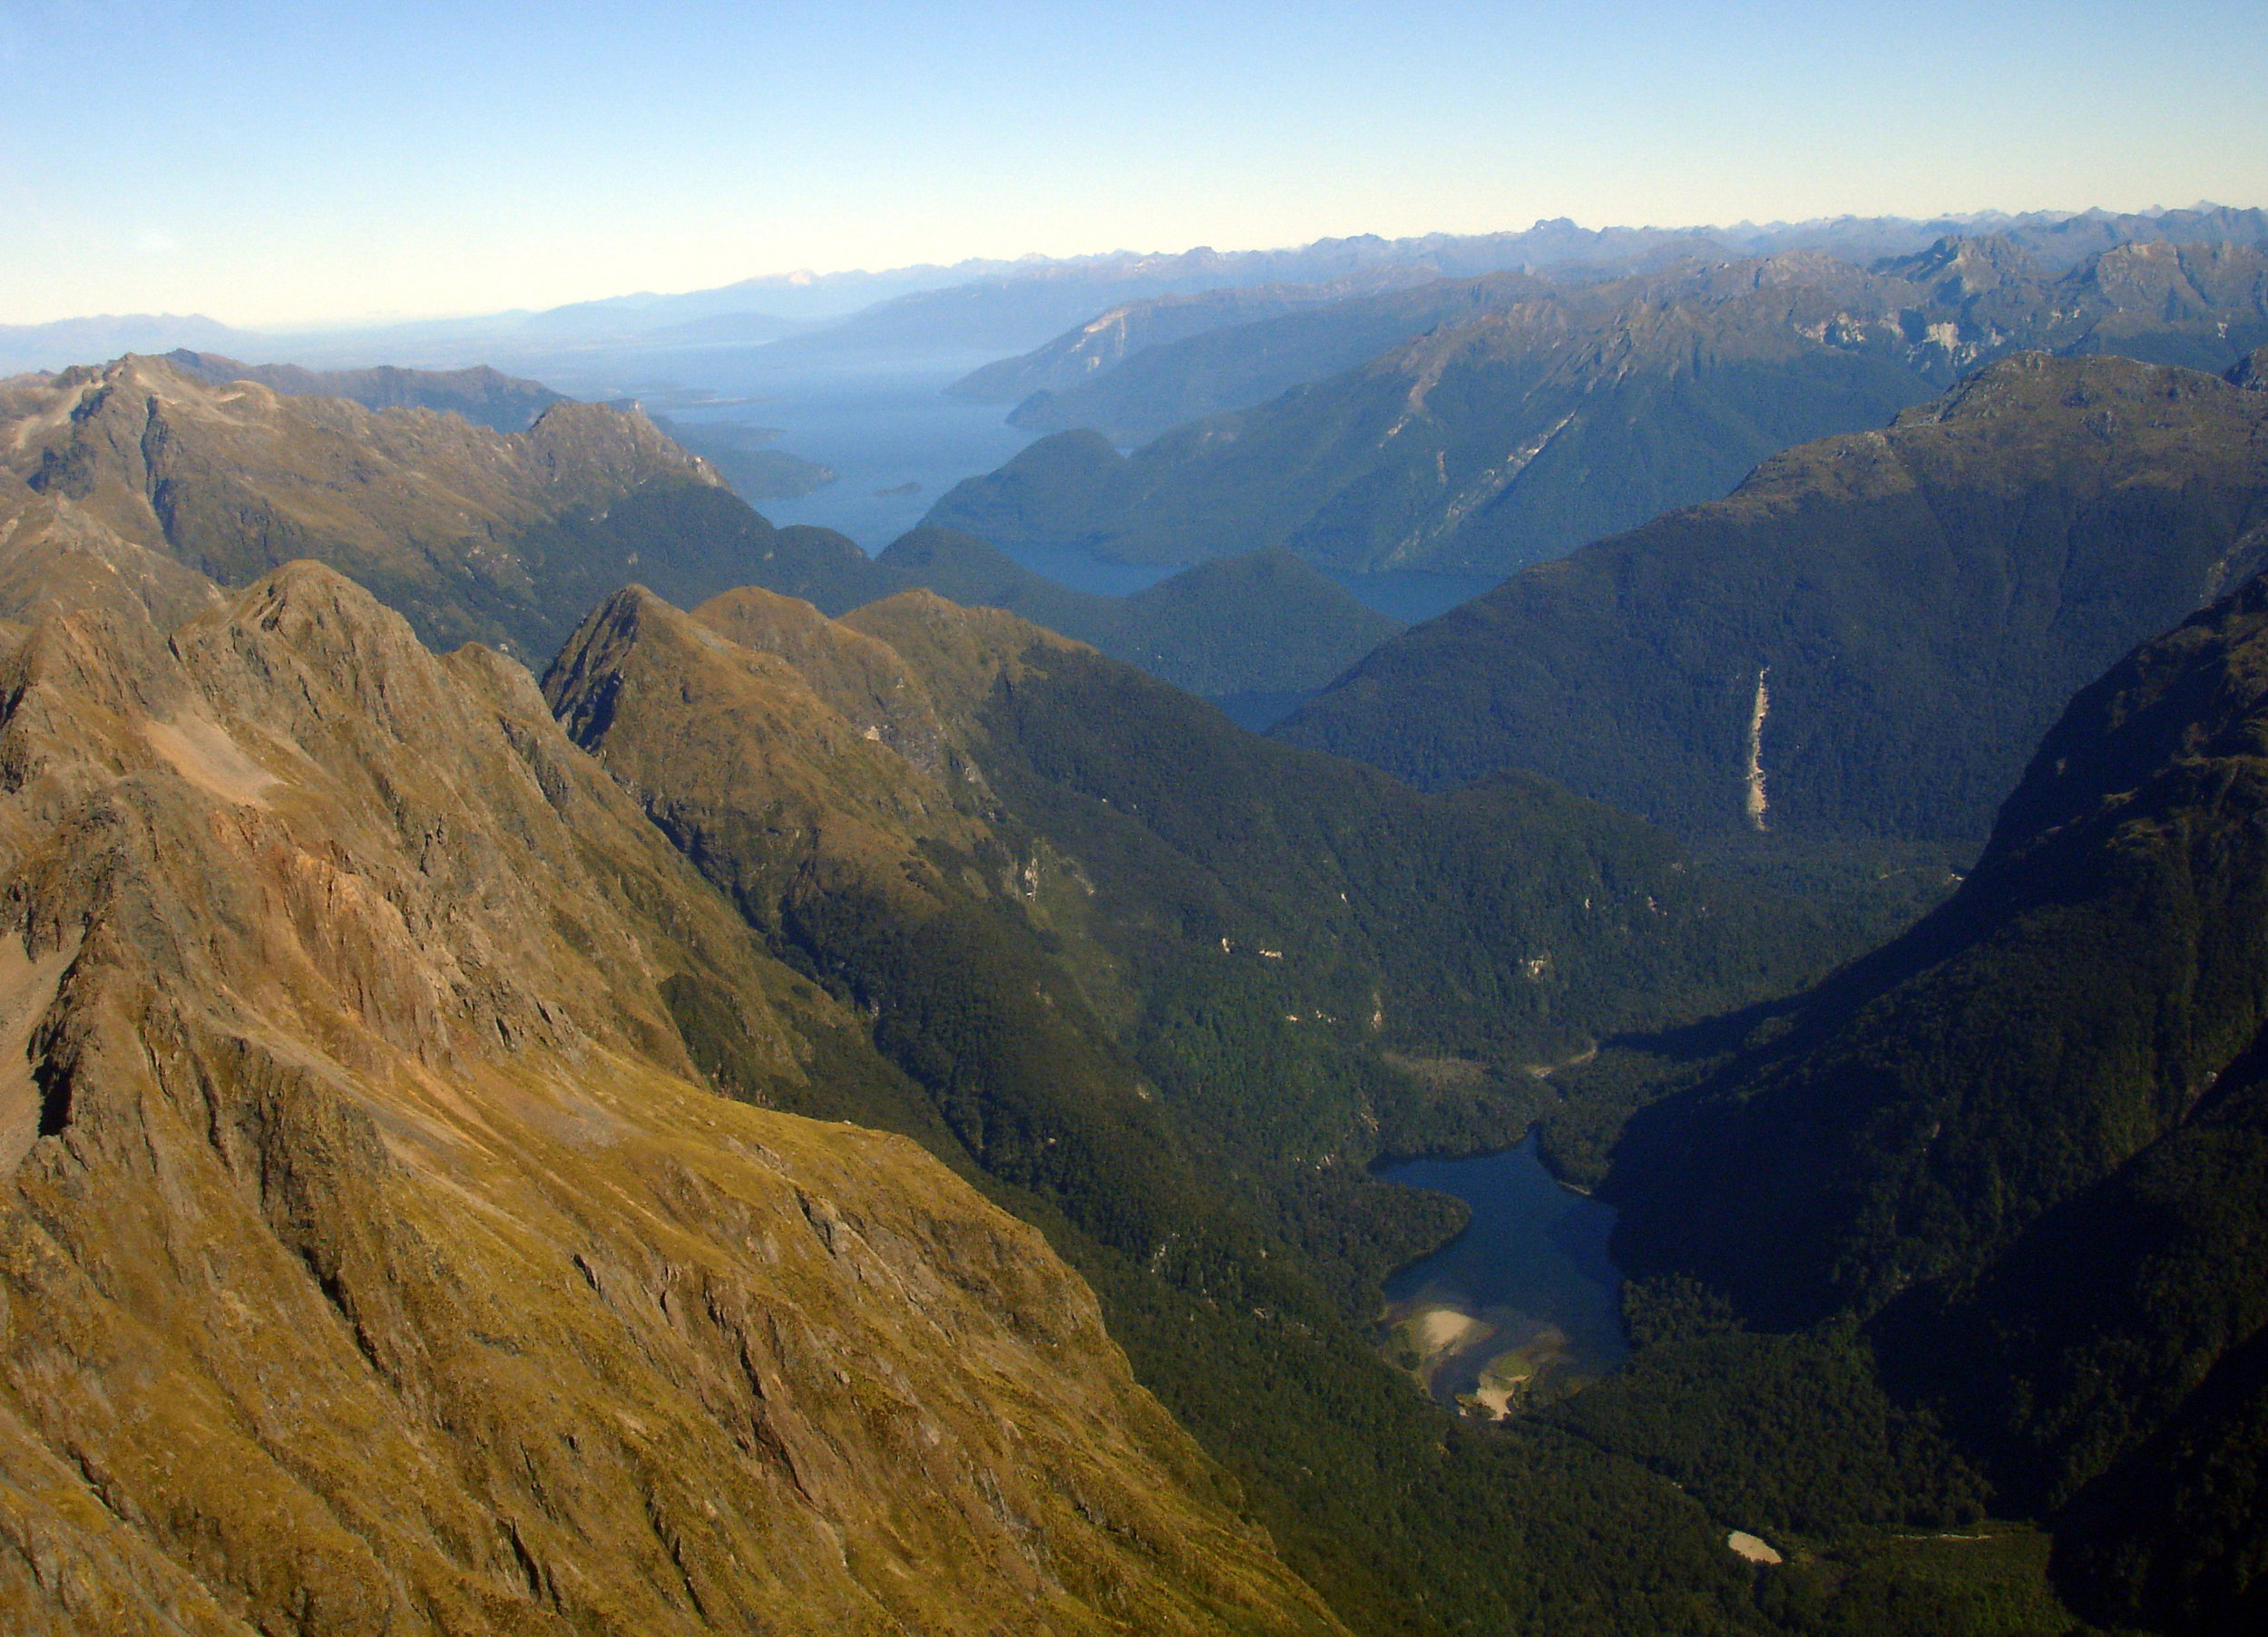 The rugged Murchison mountains in Fiordland National Park - where the takahe was rediscovered in 1948.  Image by Dan Nelson (CC BY-NC-ND 2.0).